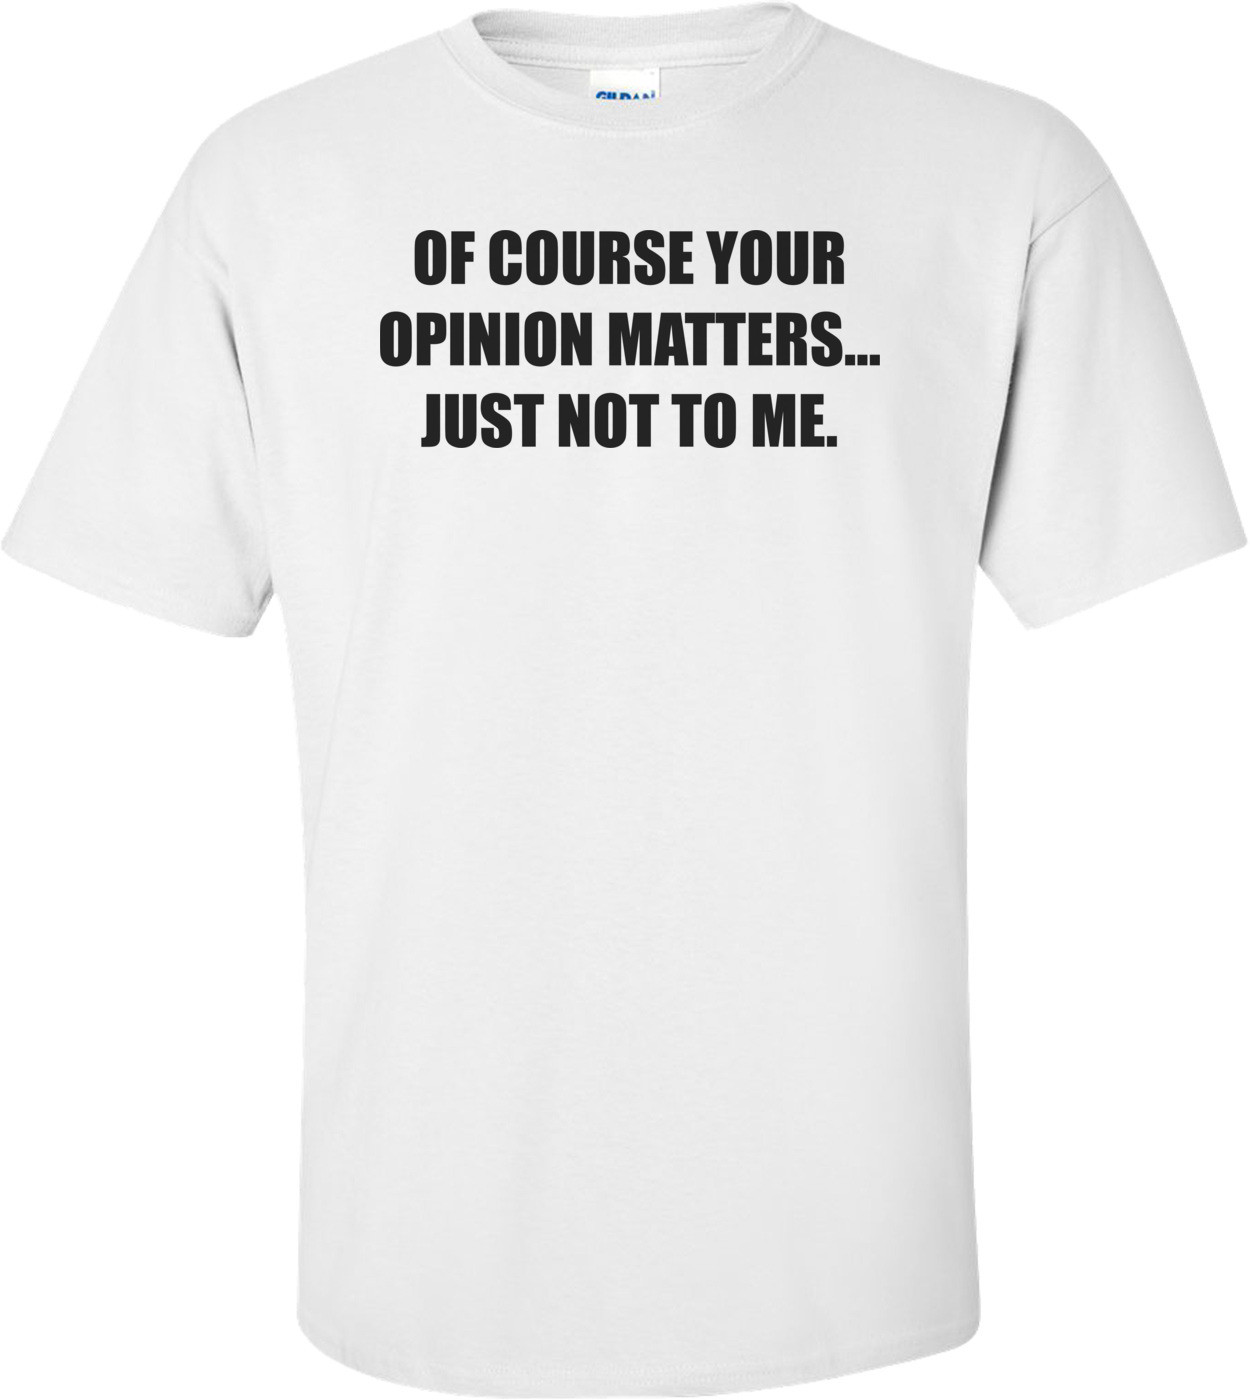 OF COURSE YOUR OPINION MATTERS... JUST NOT TO ME. Shirt